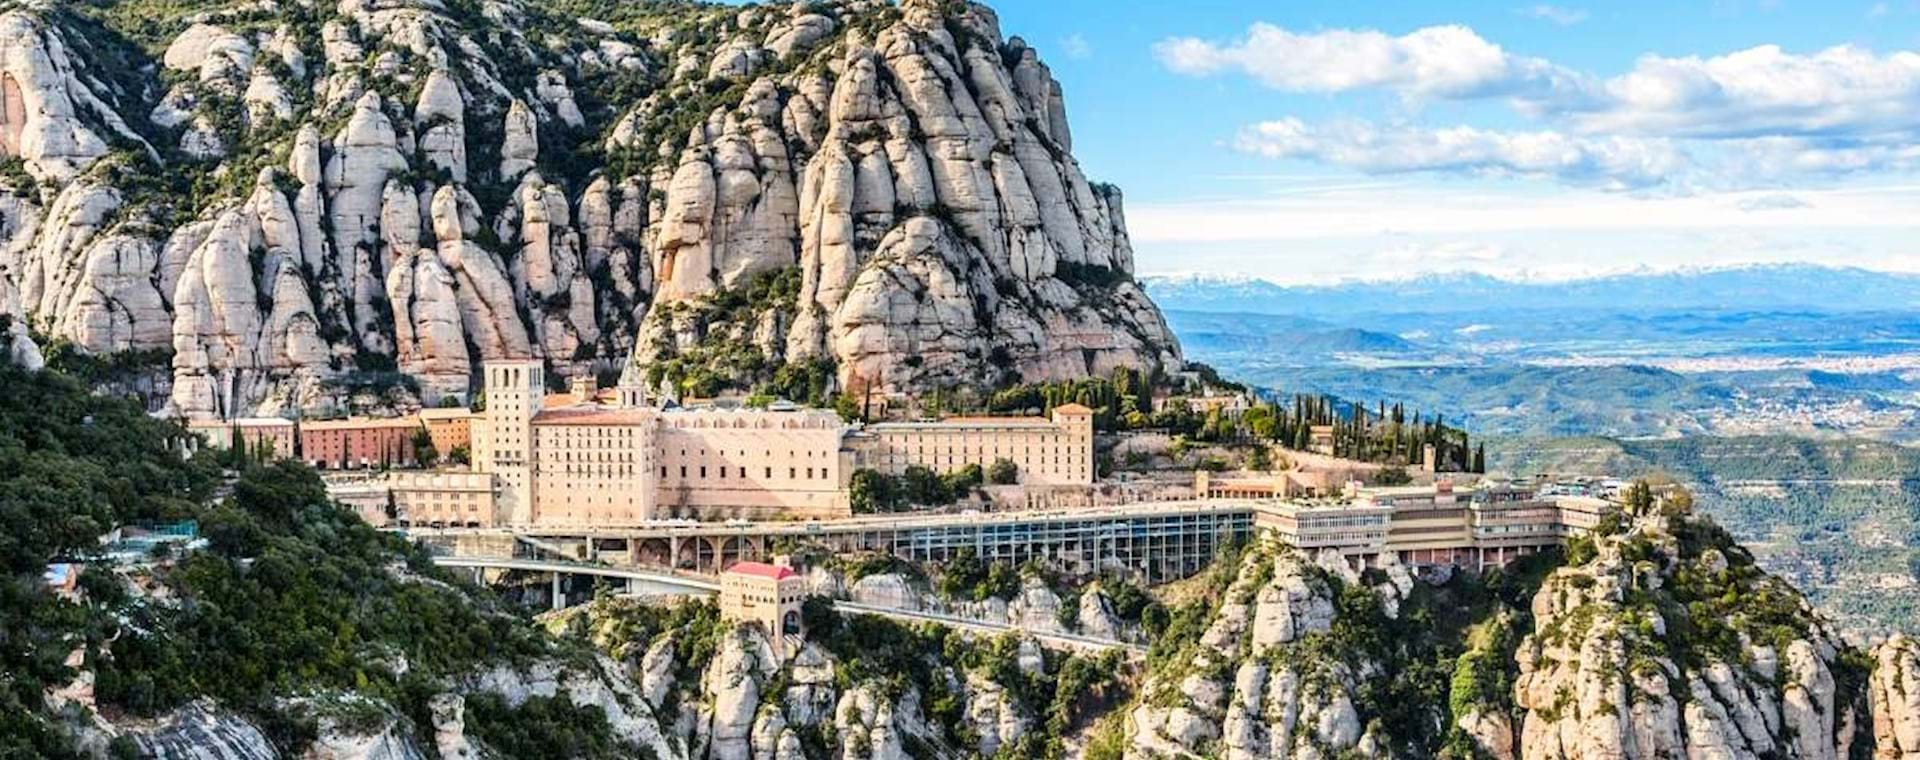 Stunning view of Montserrat near Barcelona in Spain